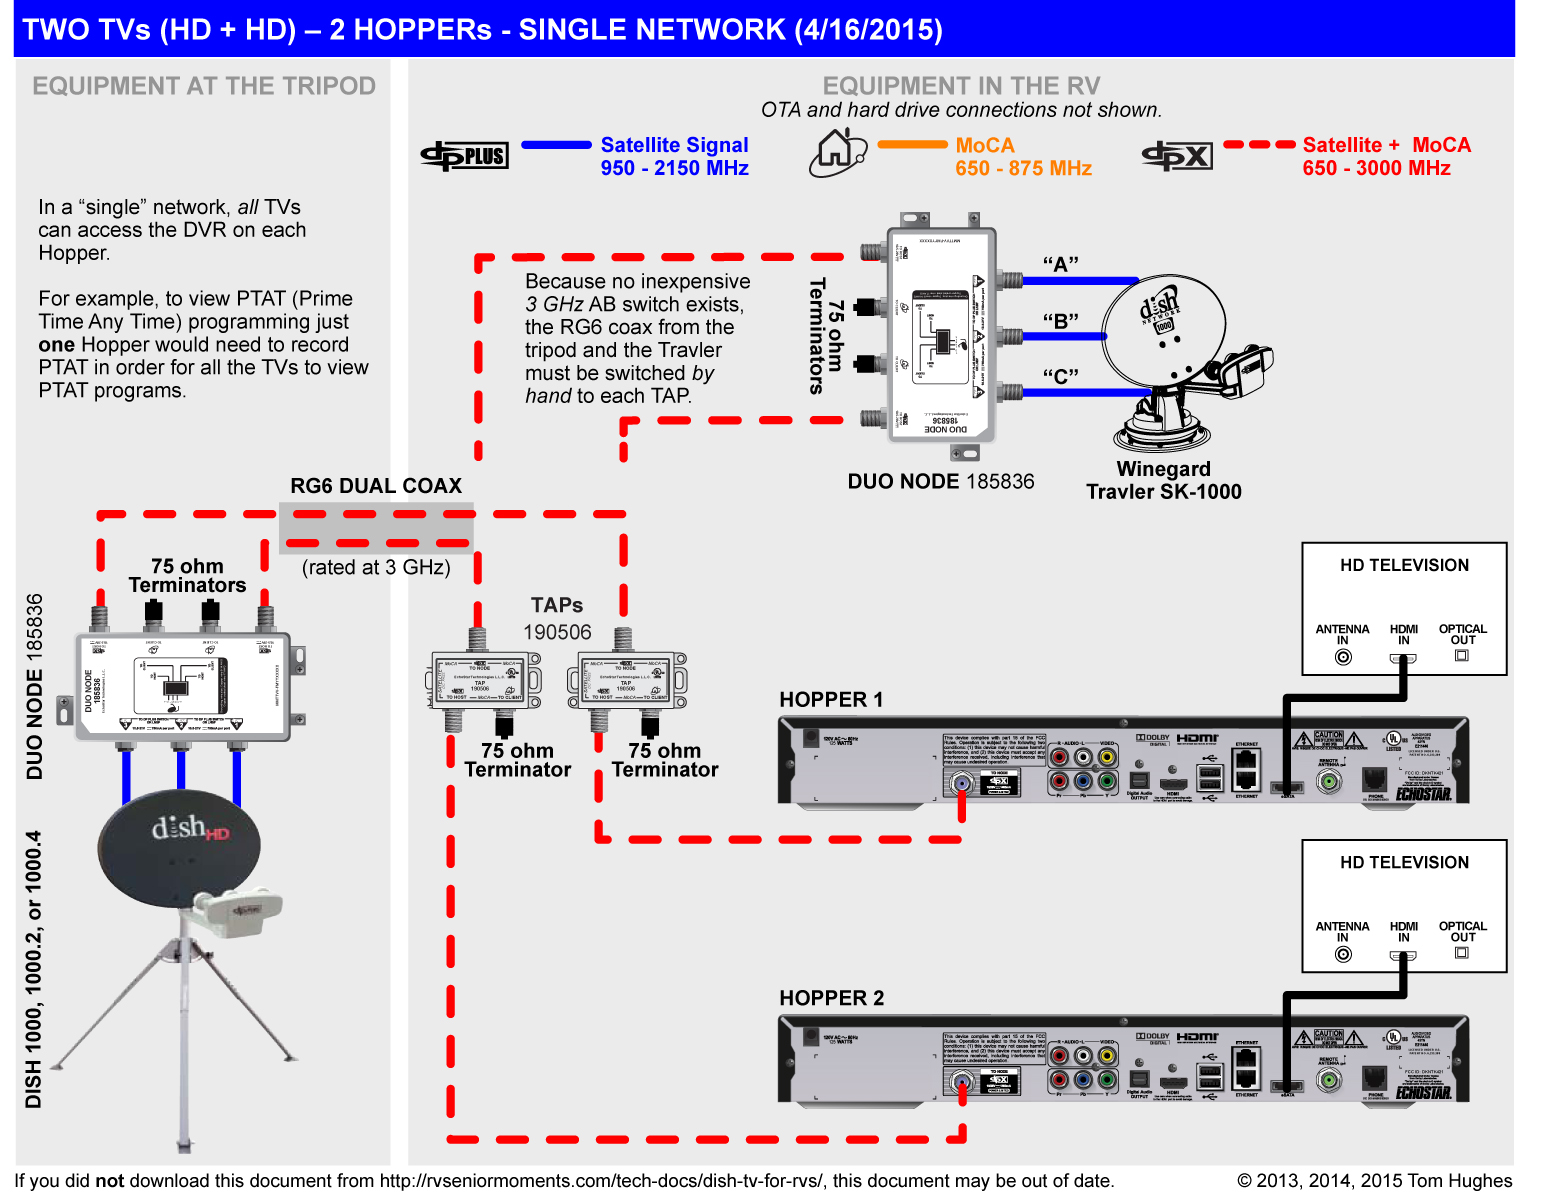 210_dish_twotvs_two_hoppers_single_network_hdhd720dpi directv whole home dvr wiring diagram directv free wiring dish network wiring diagrams dual tuner at bayanpartner.co